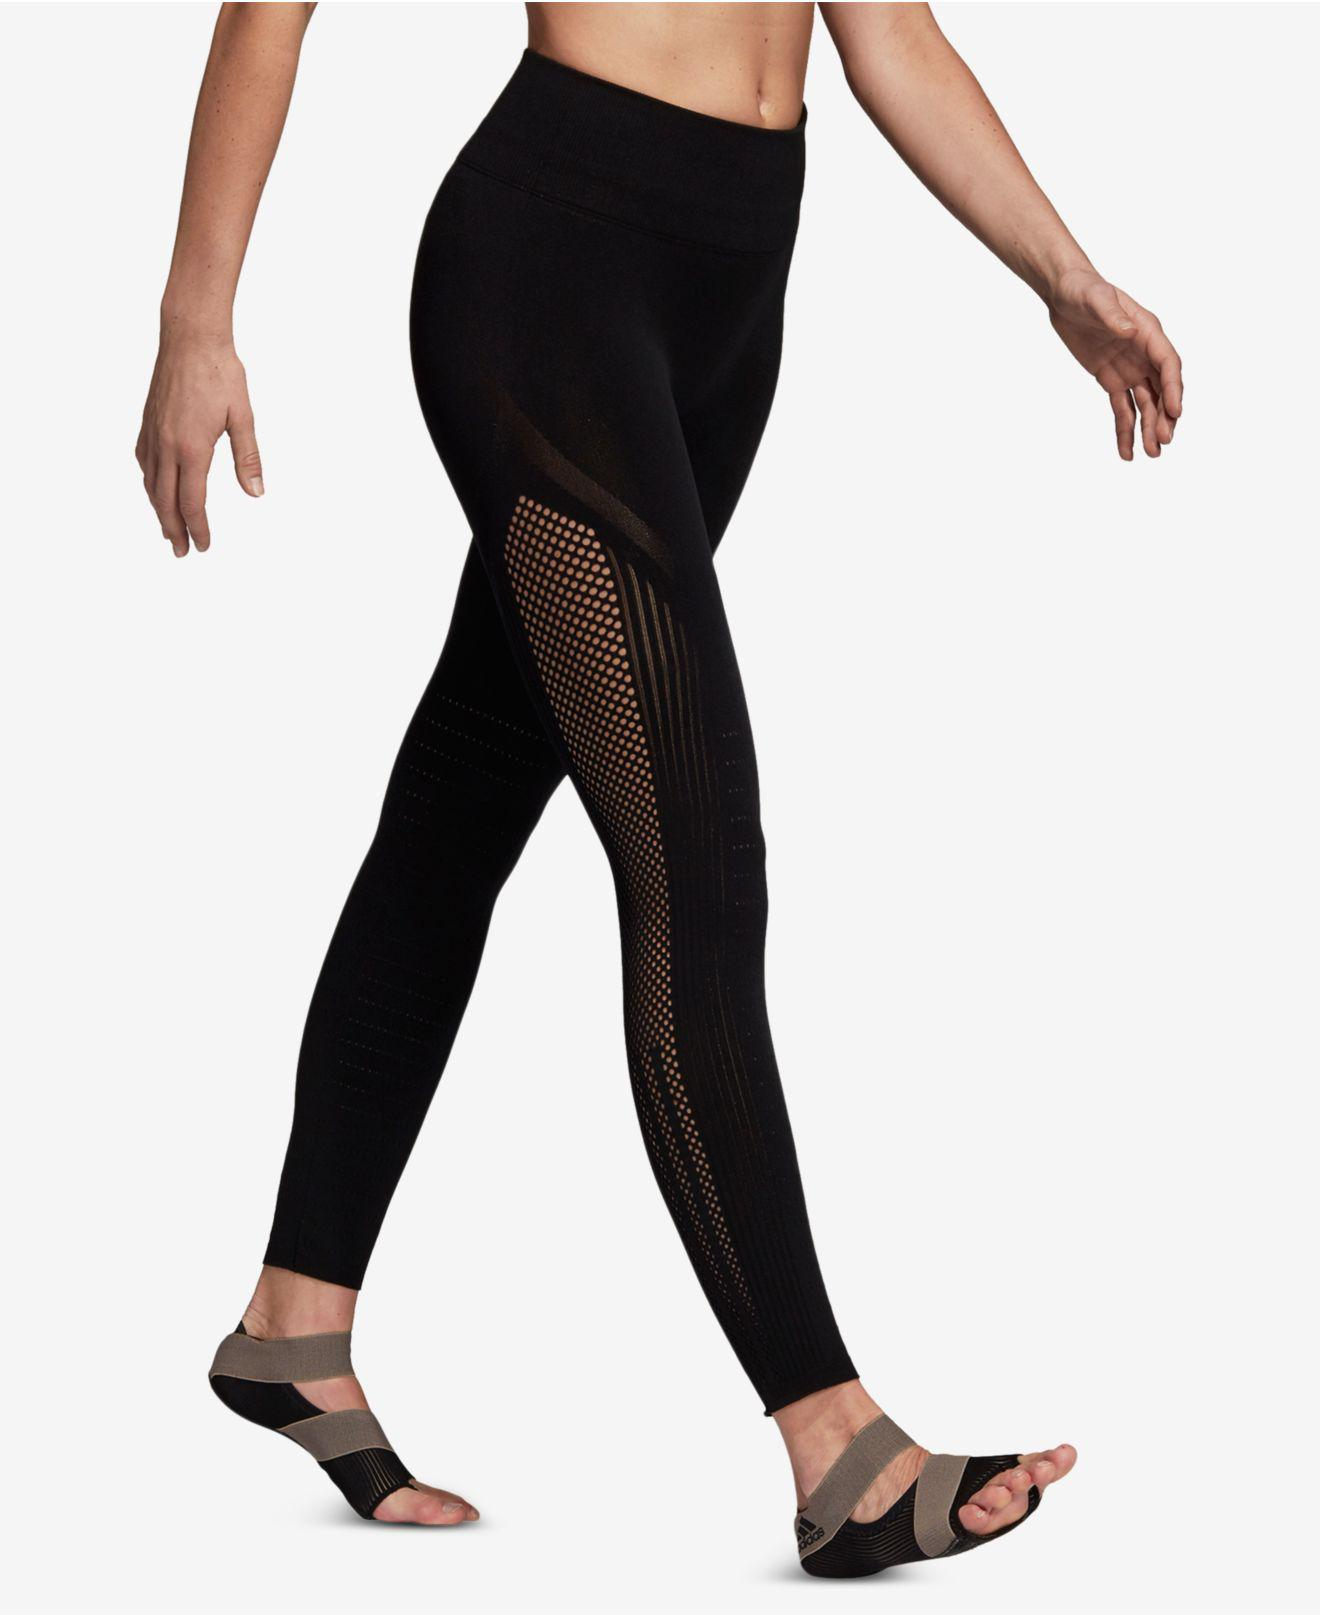 ed2ba0e3567d93 adidas High-rise Seamless Warp-knit Ankle Leggings in Black - Lyst